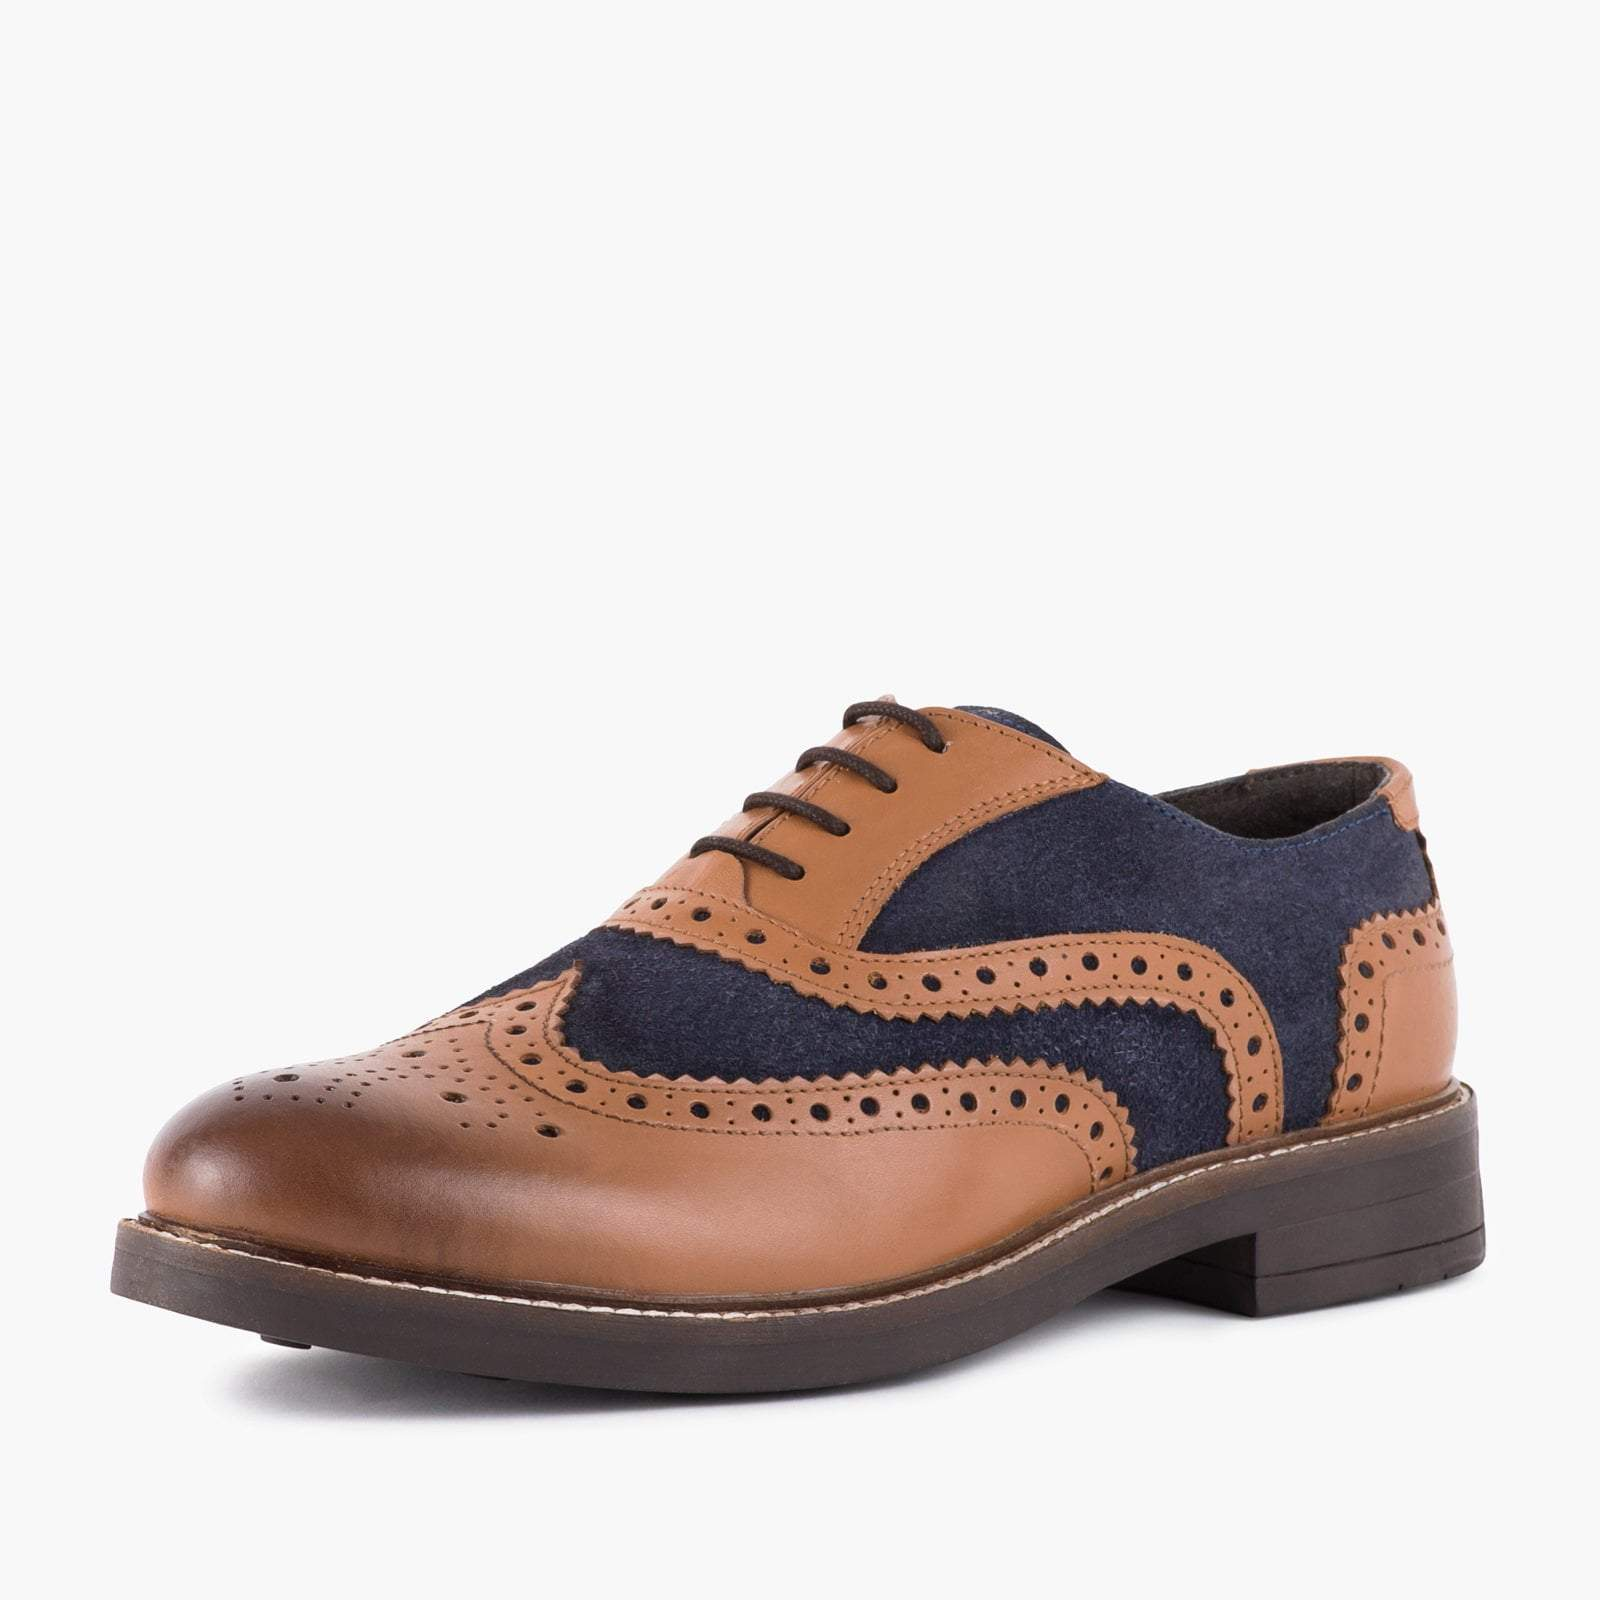 Redfoot Footwear UK 6 / EURO 39 / US 7 / Tan / Leather FLOYD TAN & NAVY